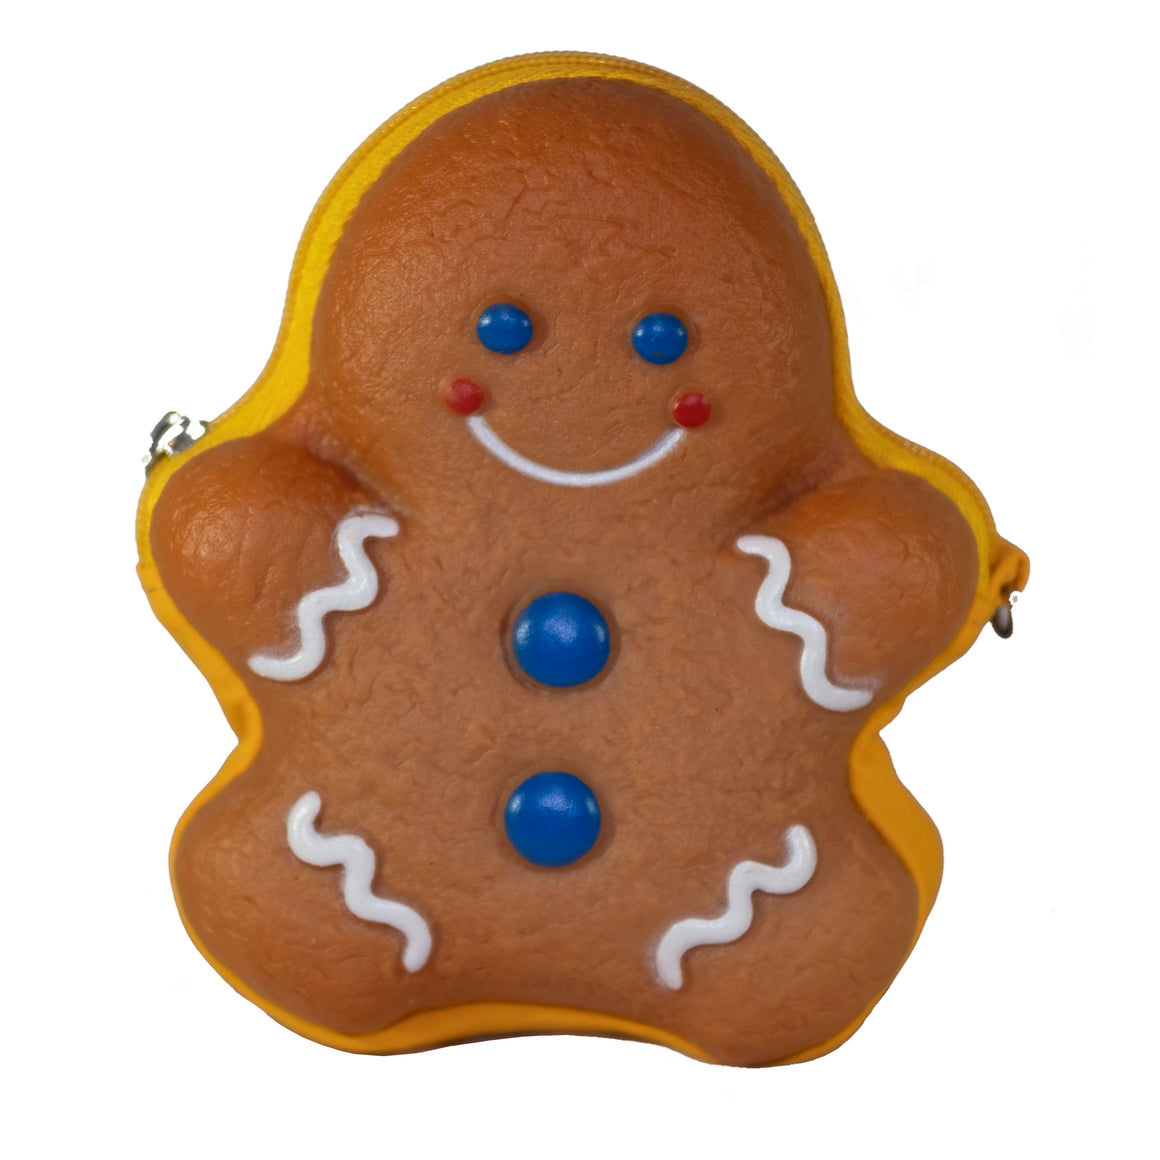 Scented Ginger Bread Man Coin Purse